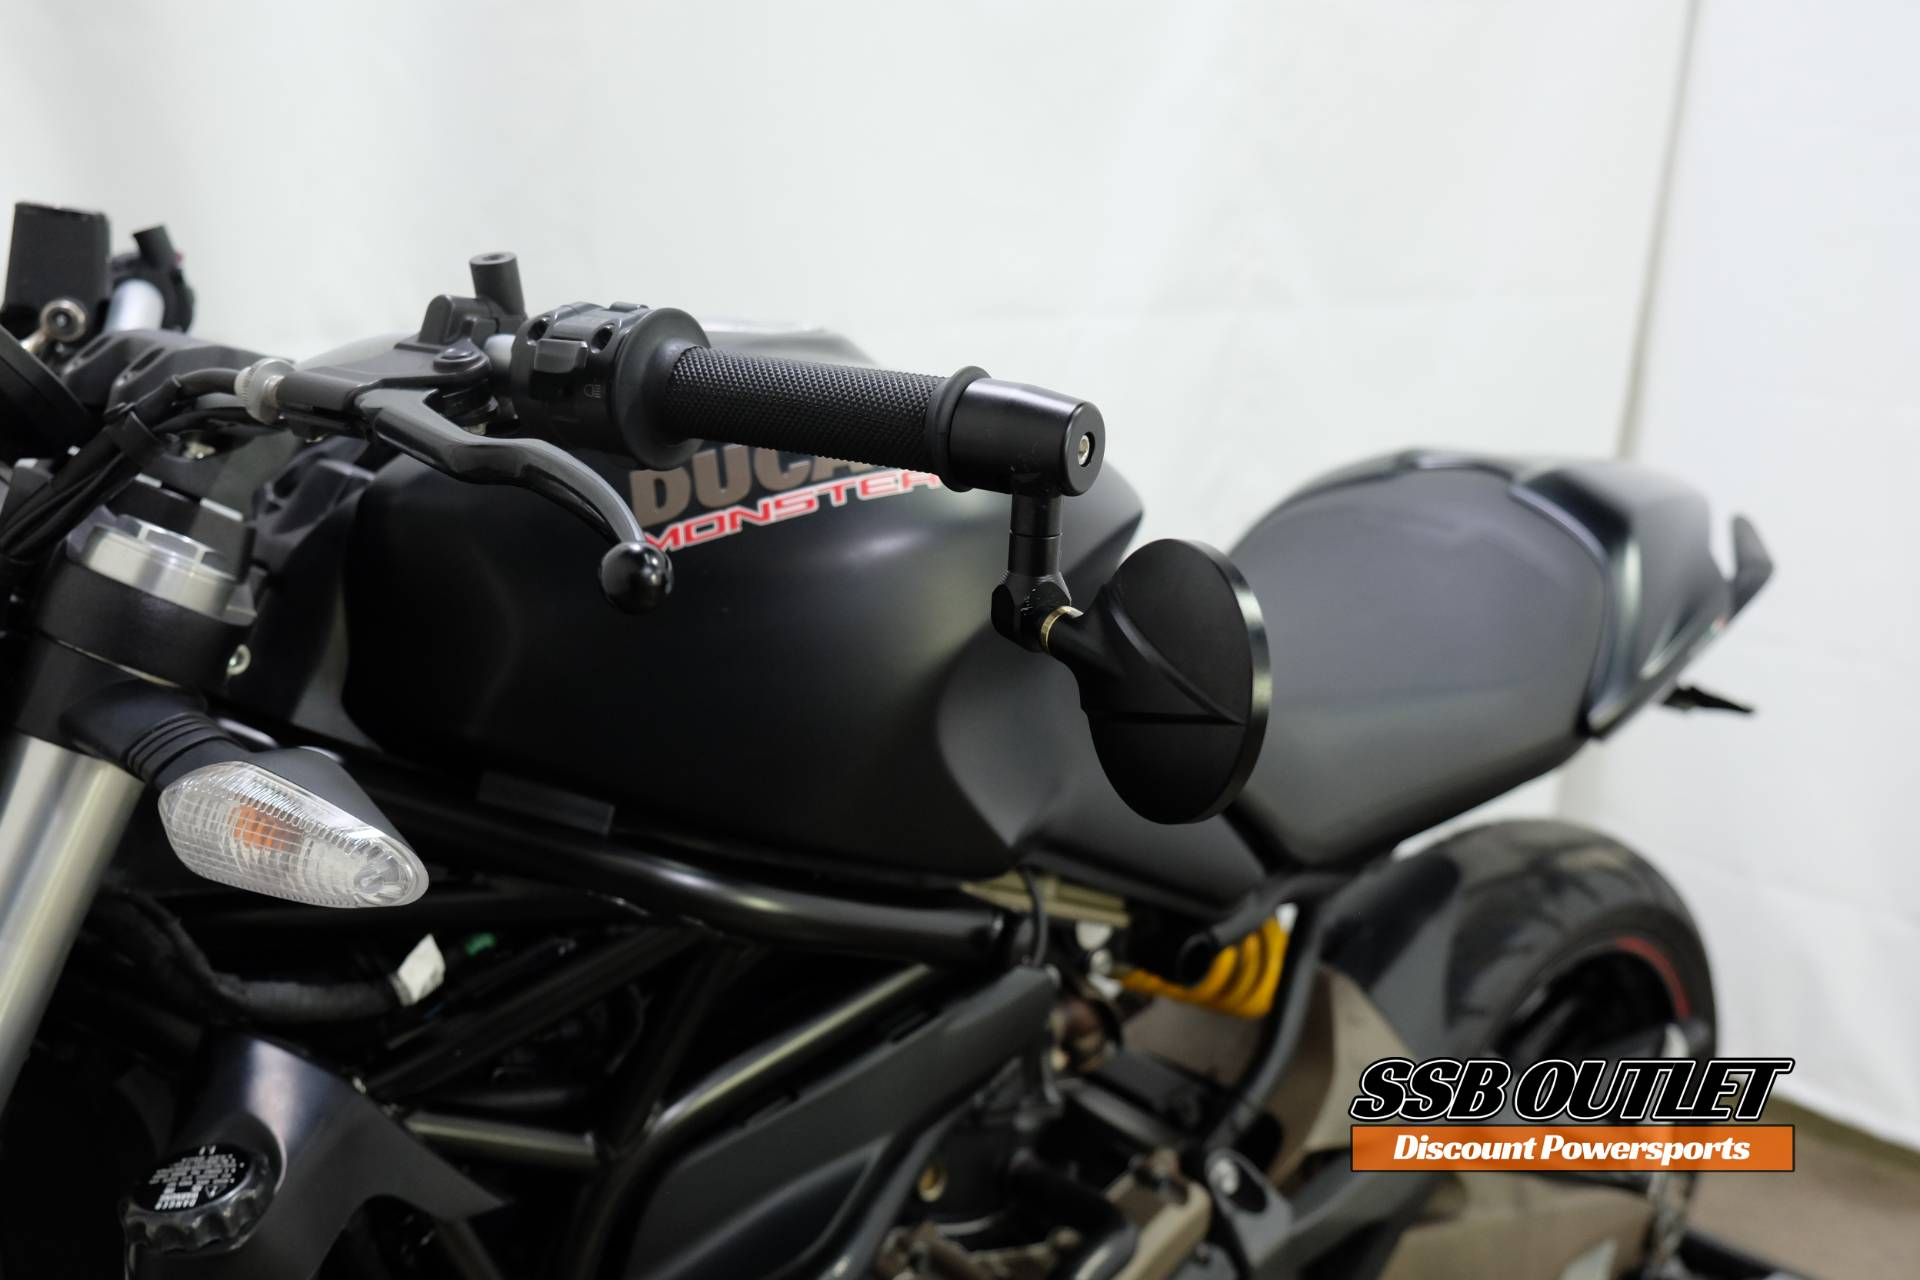 2015 Ducati Monster 821 Dark in Eden Prairie, Minnesota - Photo 14